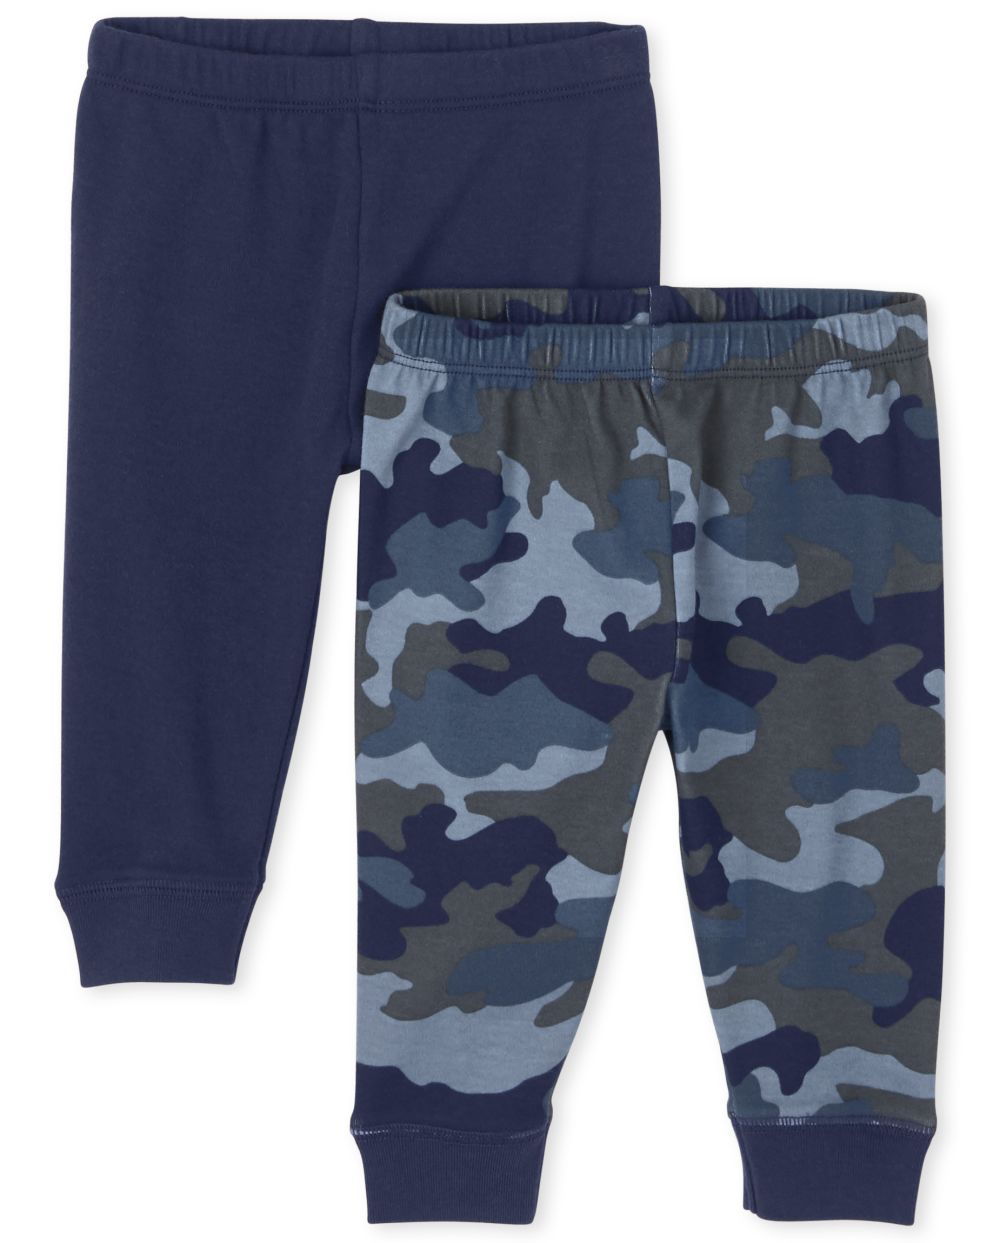 Newborn Baby Boys Camo Pants 2-Pack - Blue